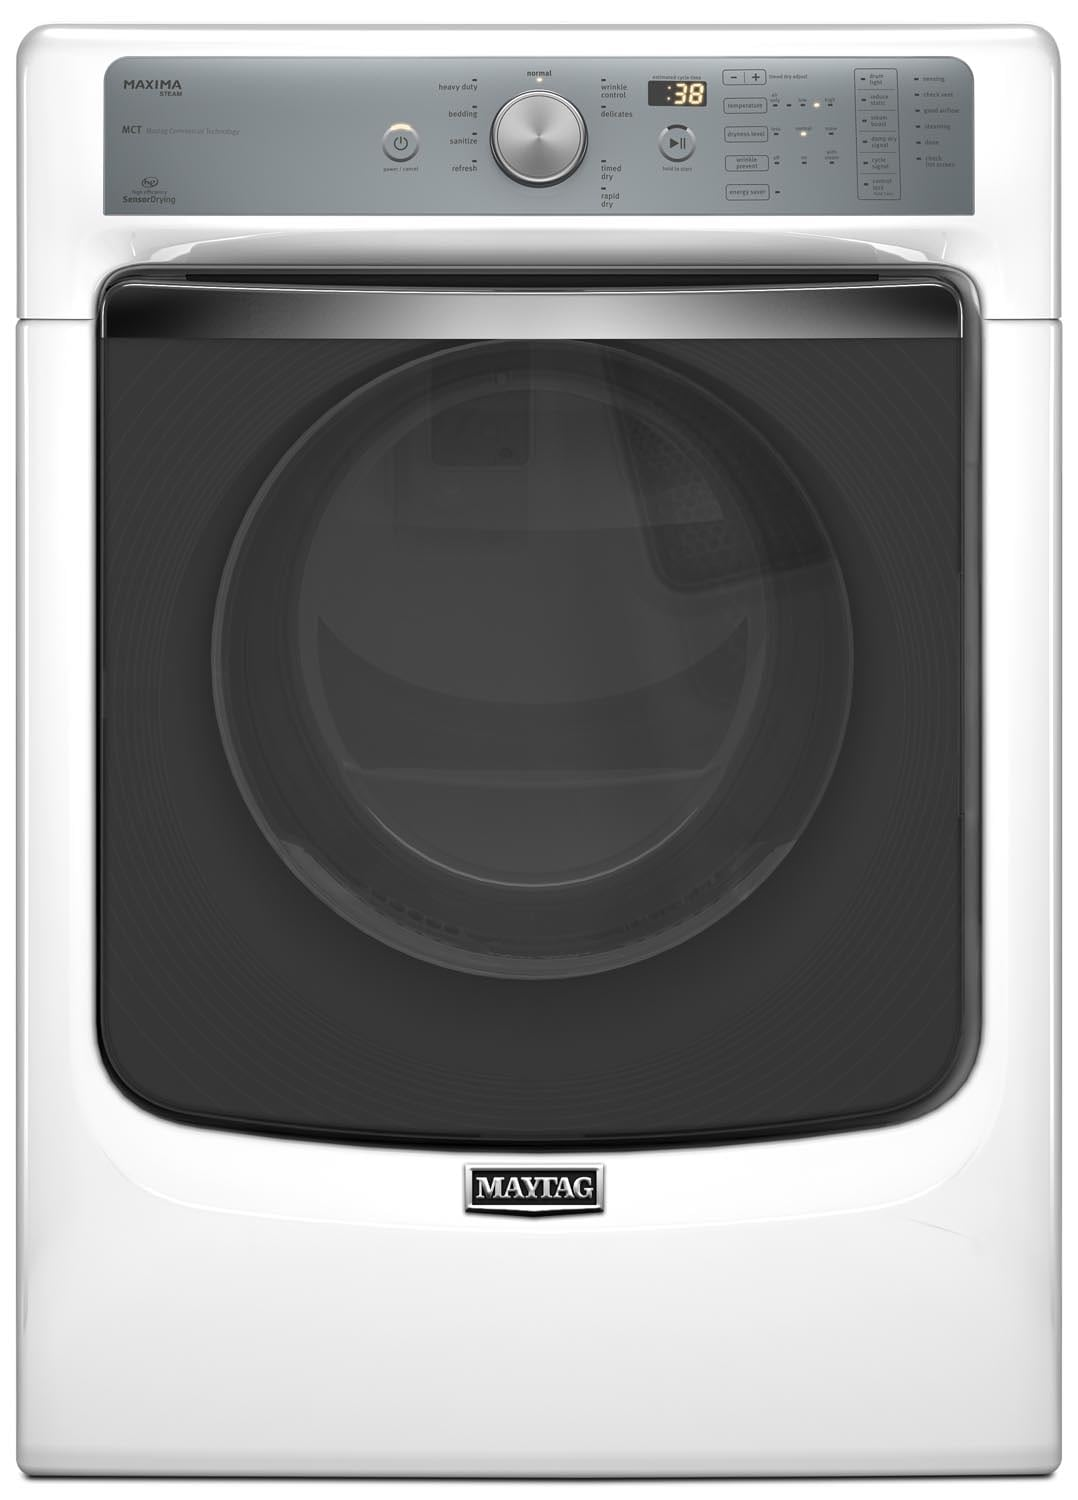 Washers and Dryers - Maytag Maxima® Gas Dryer w/ SoundGuard® Dryer Drum (7.3 Cu. Ft.) MGD8100DW